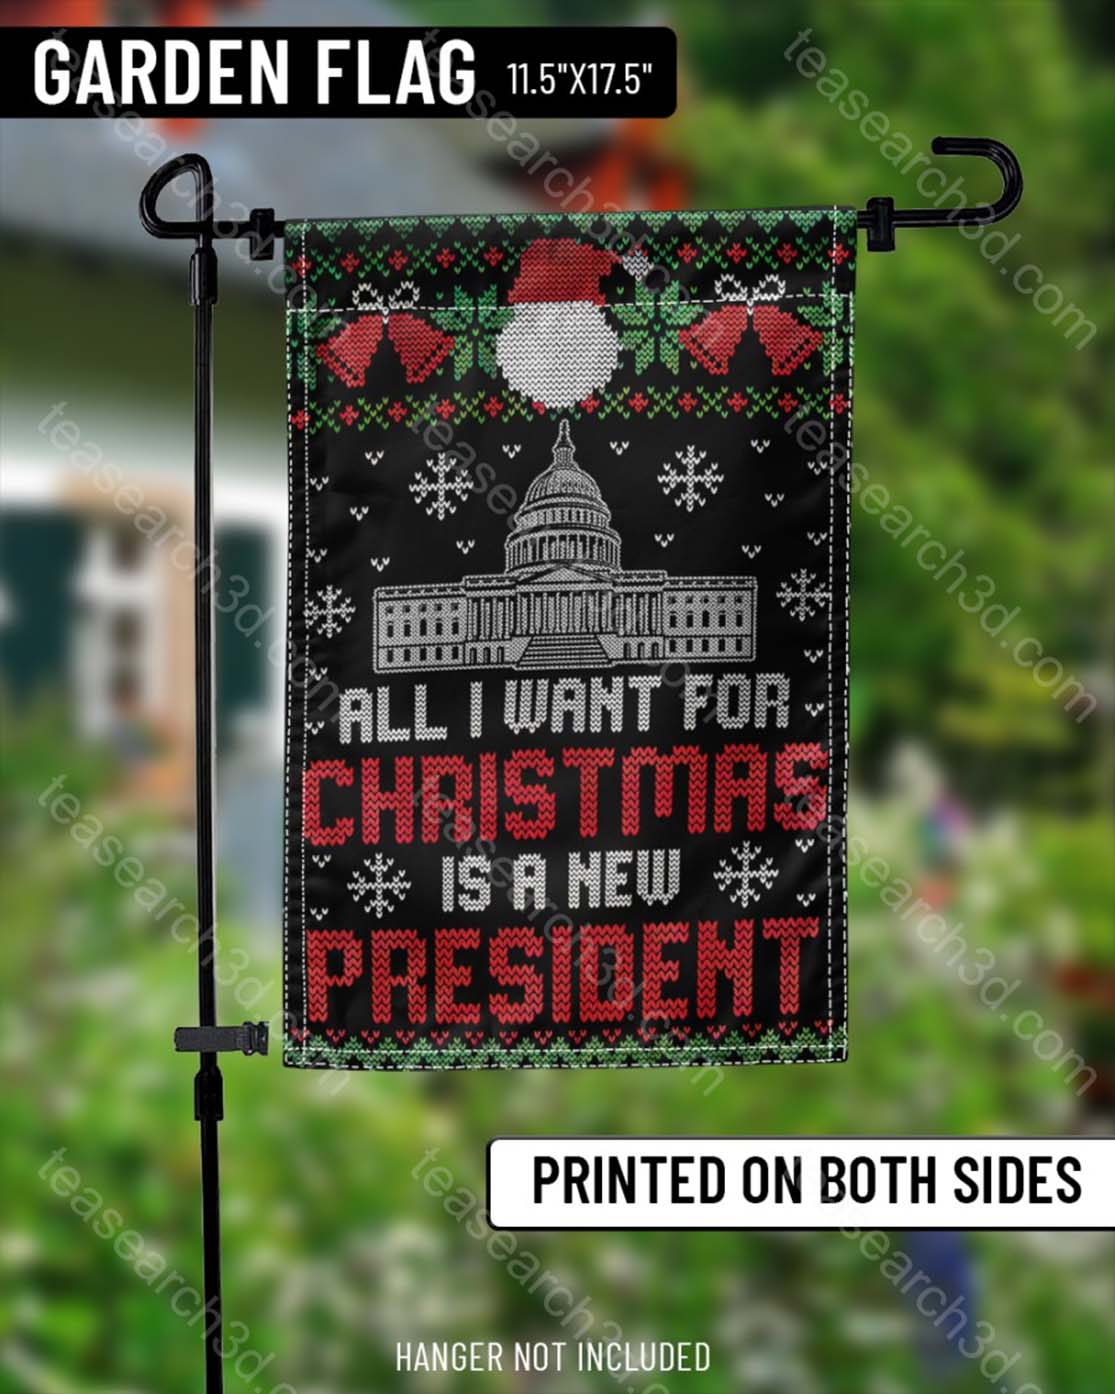 US Capitol Building All I want for christmas is a new president garden flag